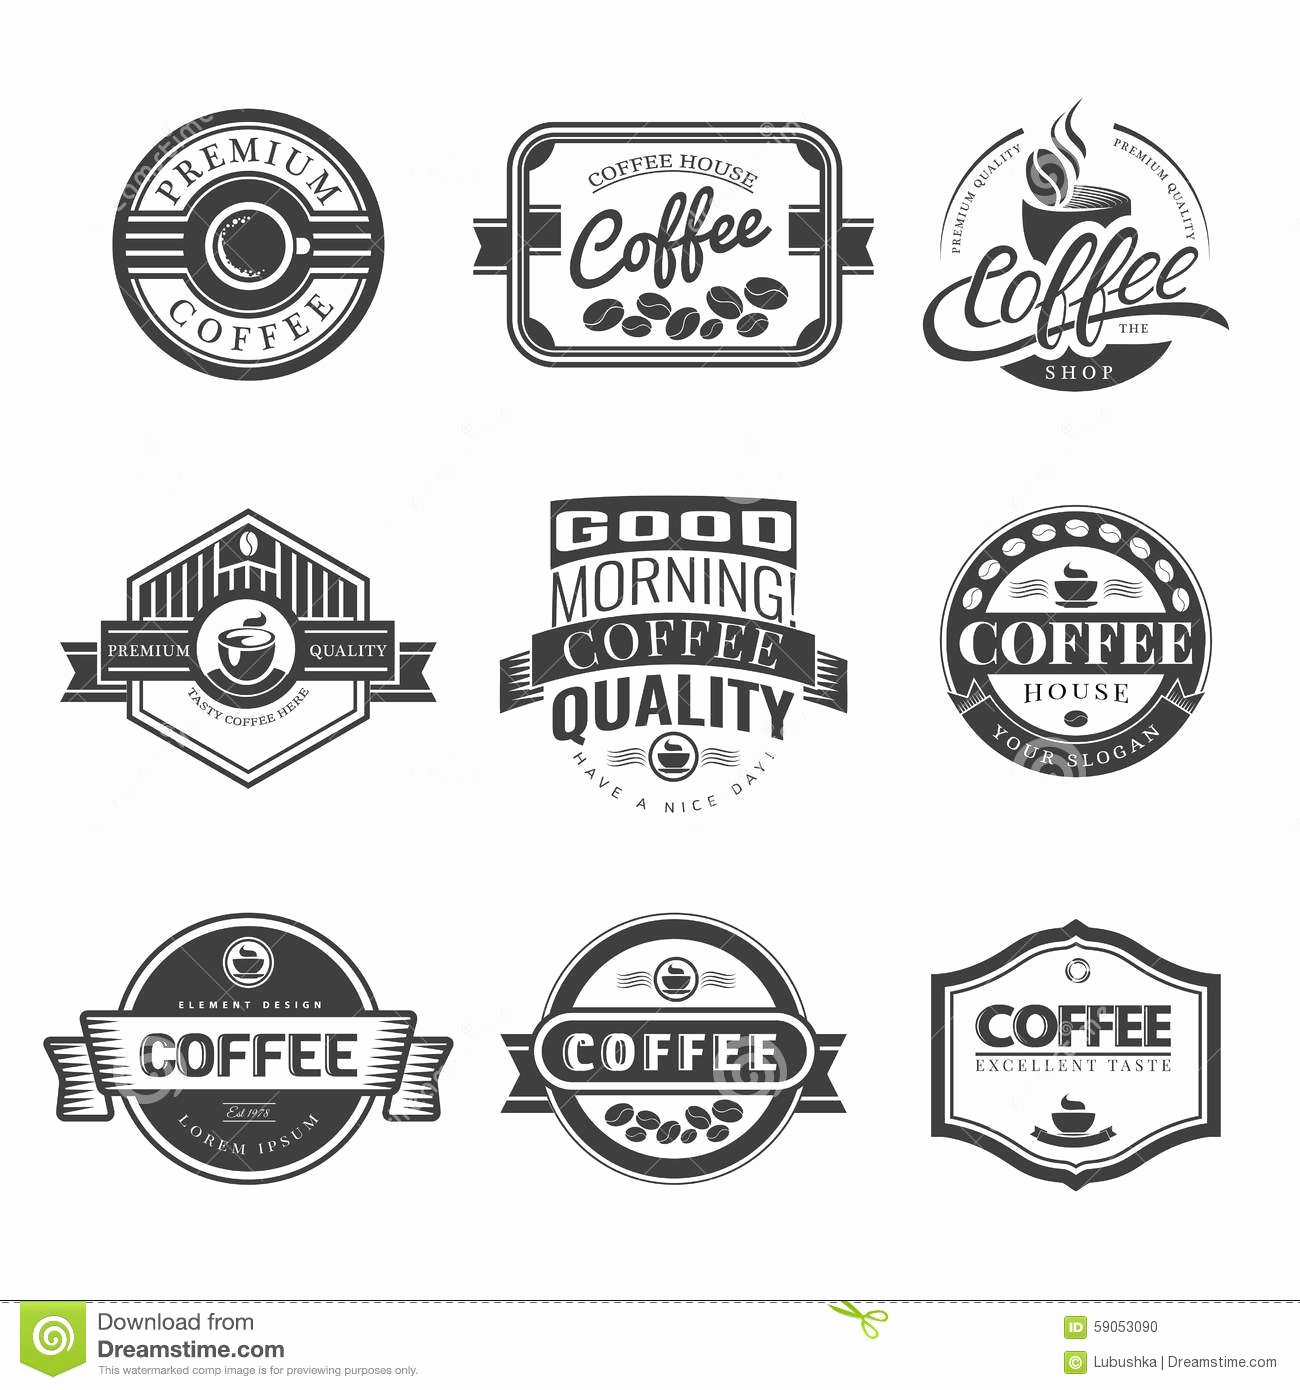 Free Vintage Logo Template Awesome Coffee Vintage Logo Stock Vector Illustration Of